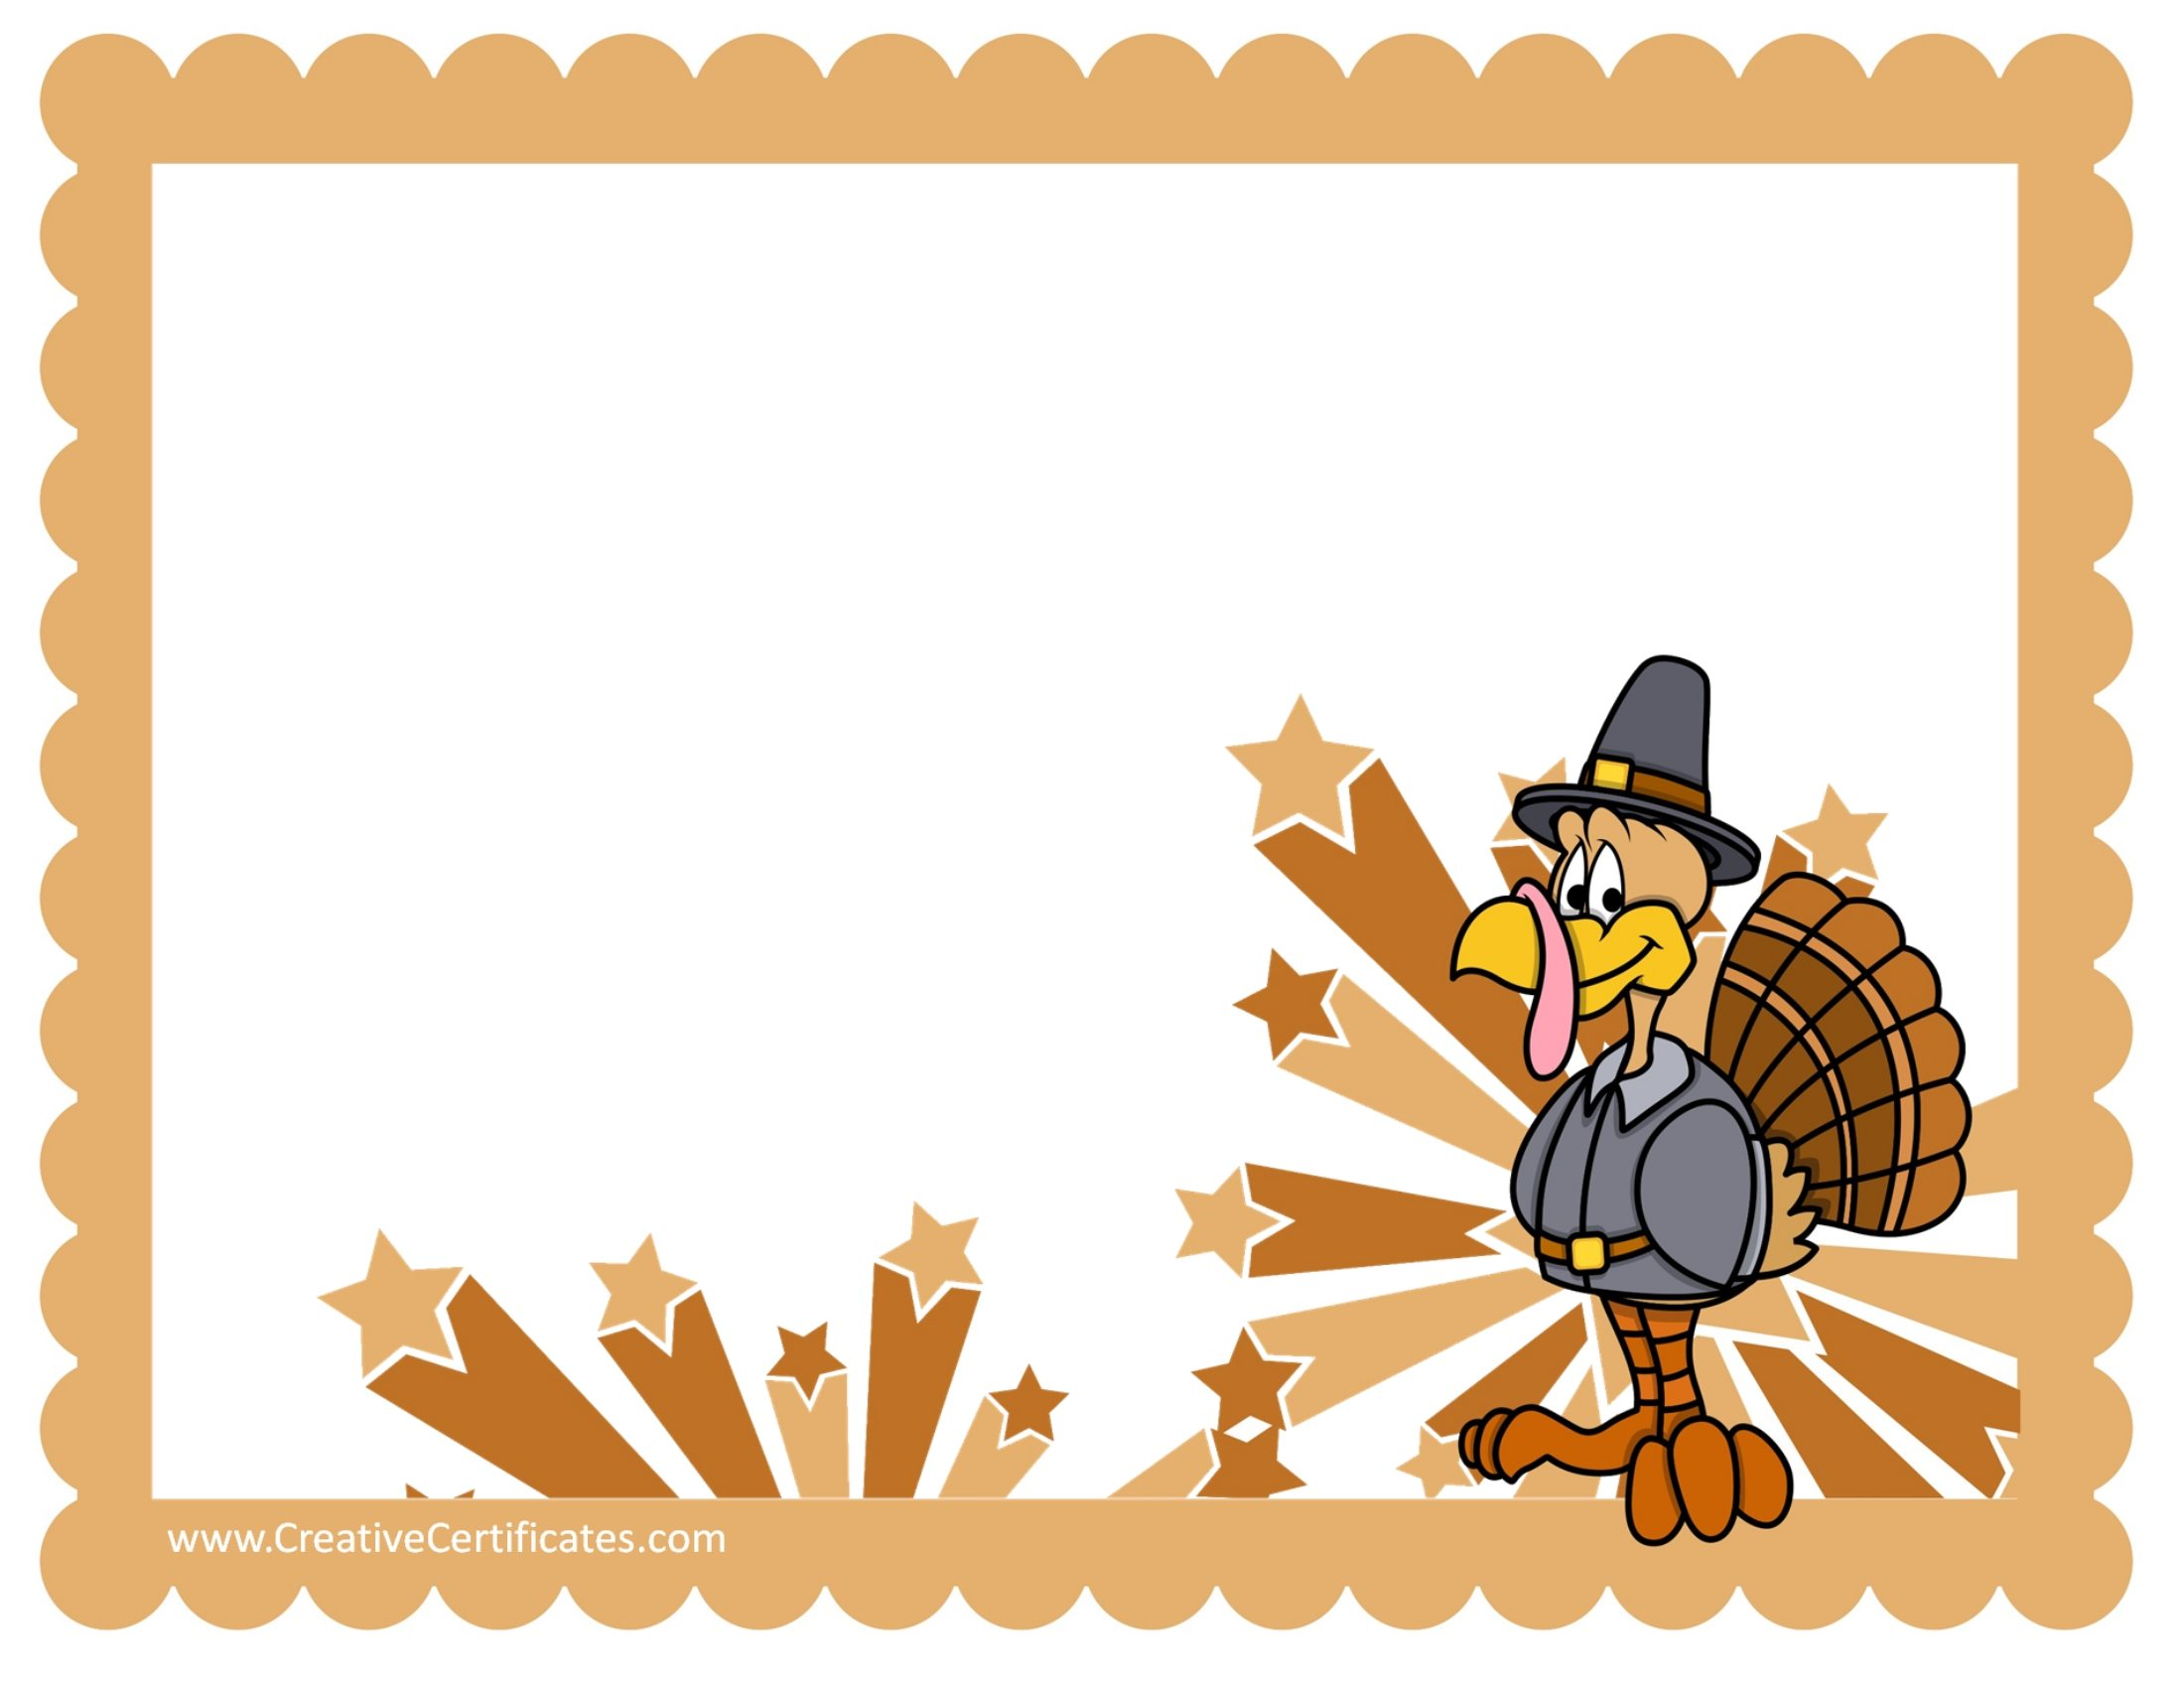 2200x1700 Free Thanksgiving Border Templates